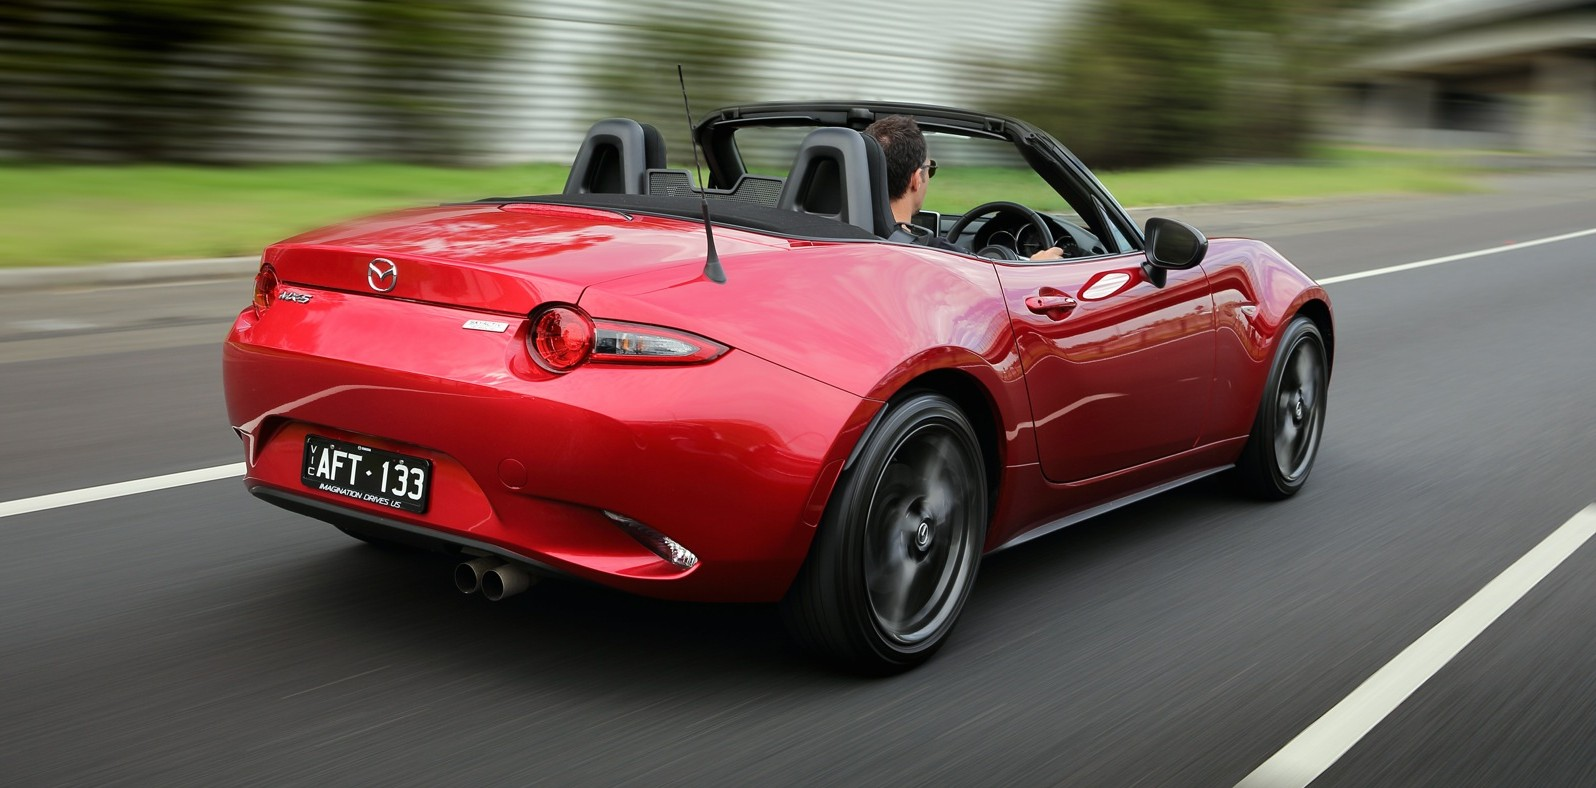 2017 mazda mx-5 roadster coupe ready for new york motor show